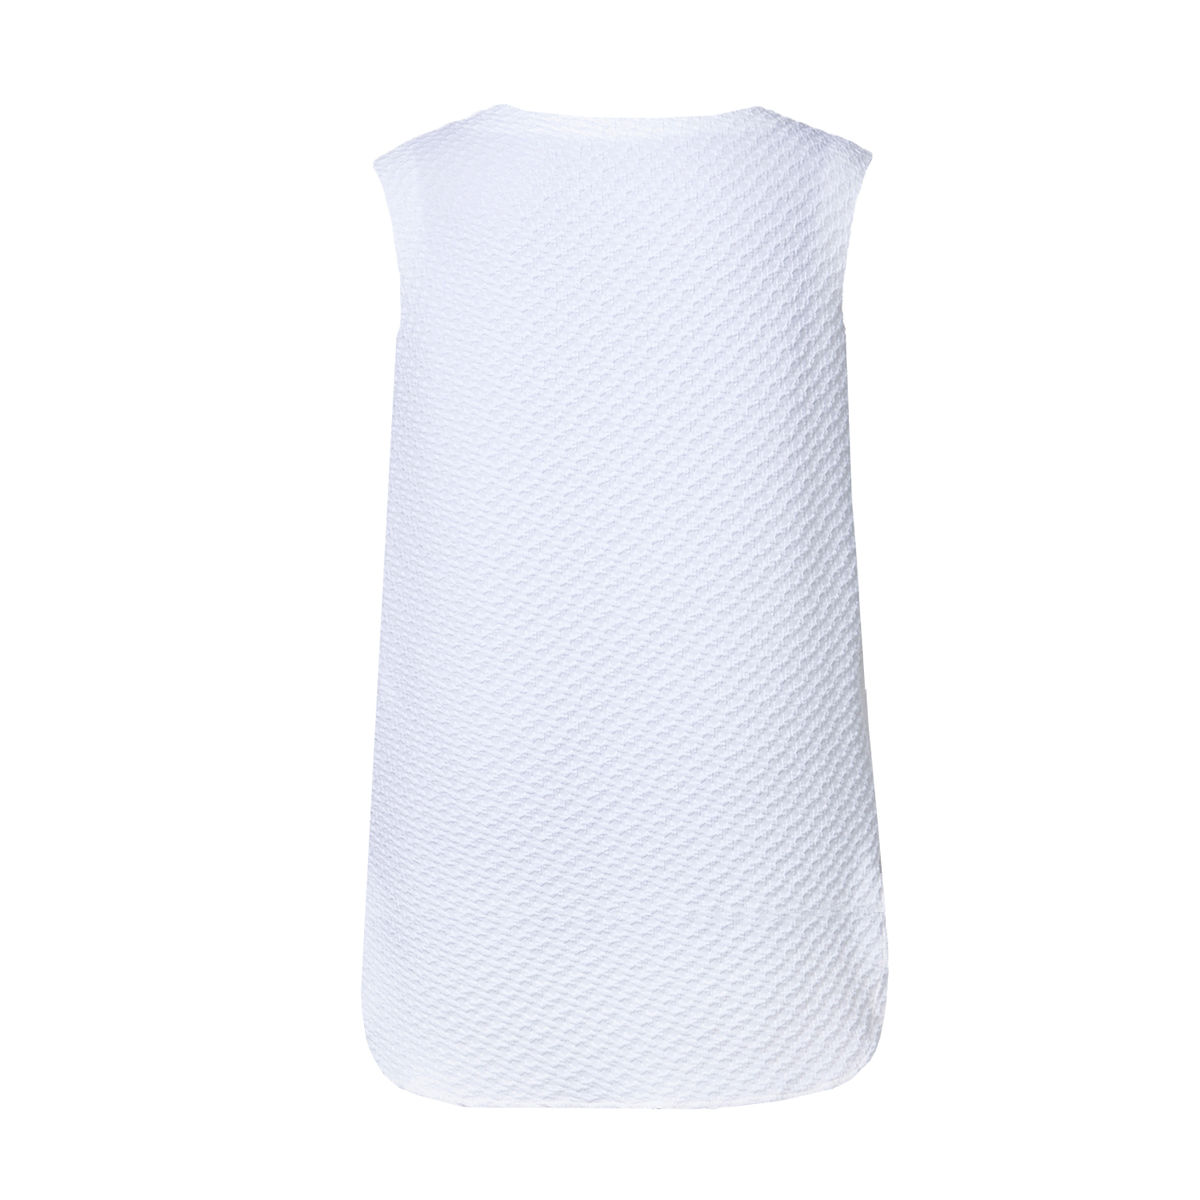 Boat-neck mini-dress - White - product images  of